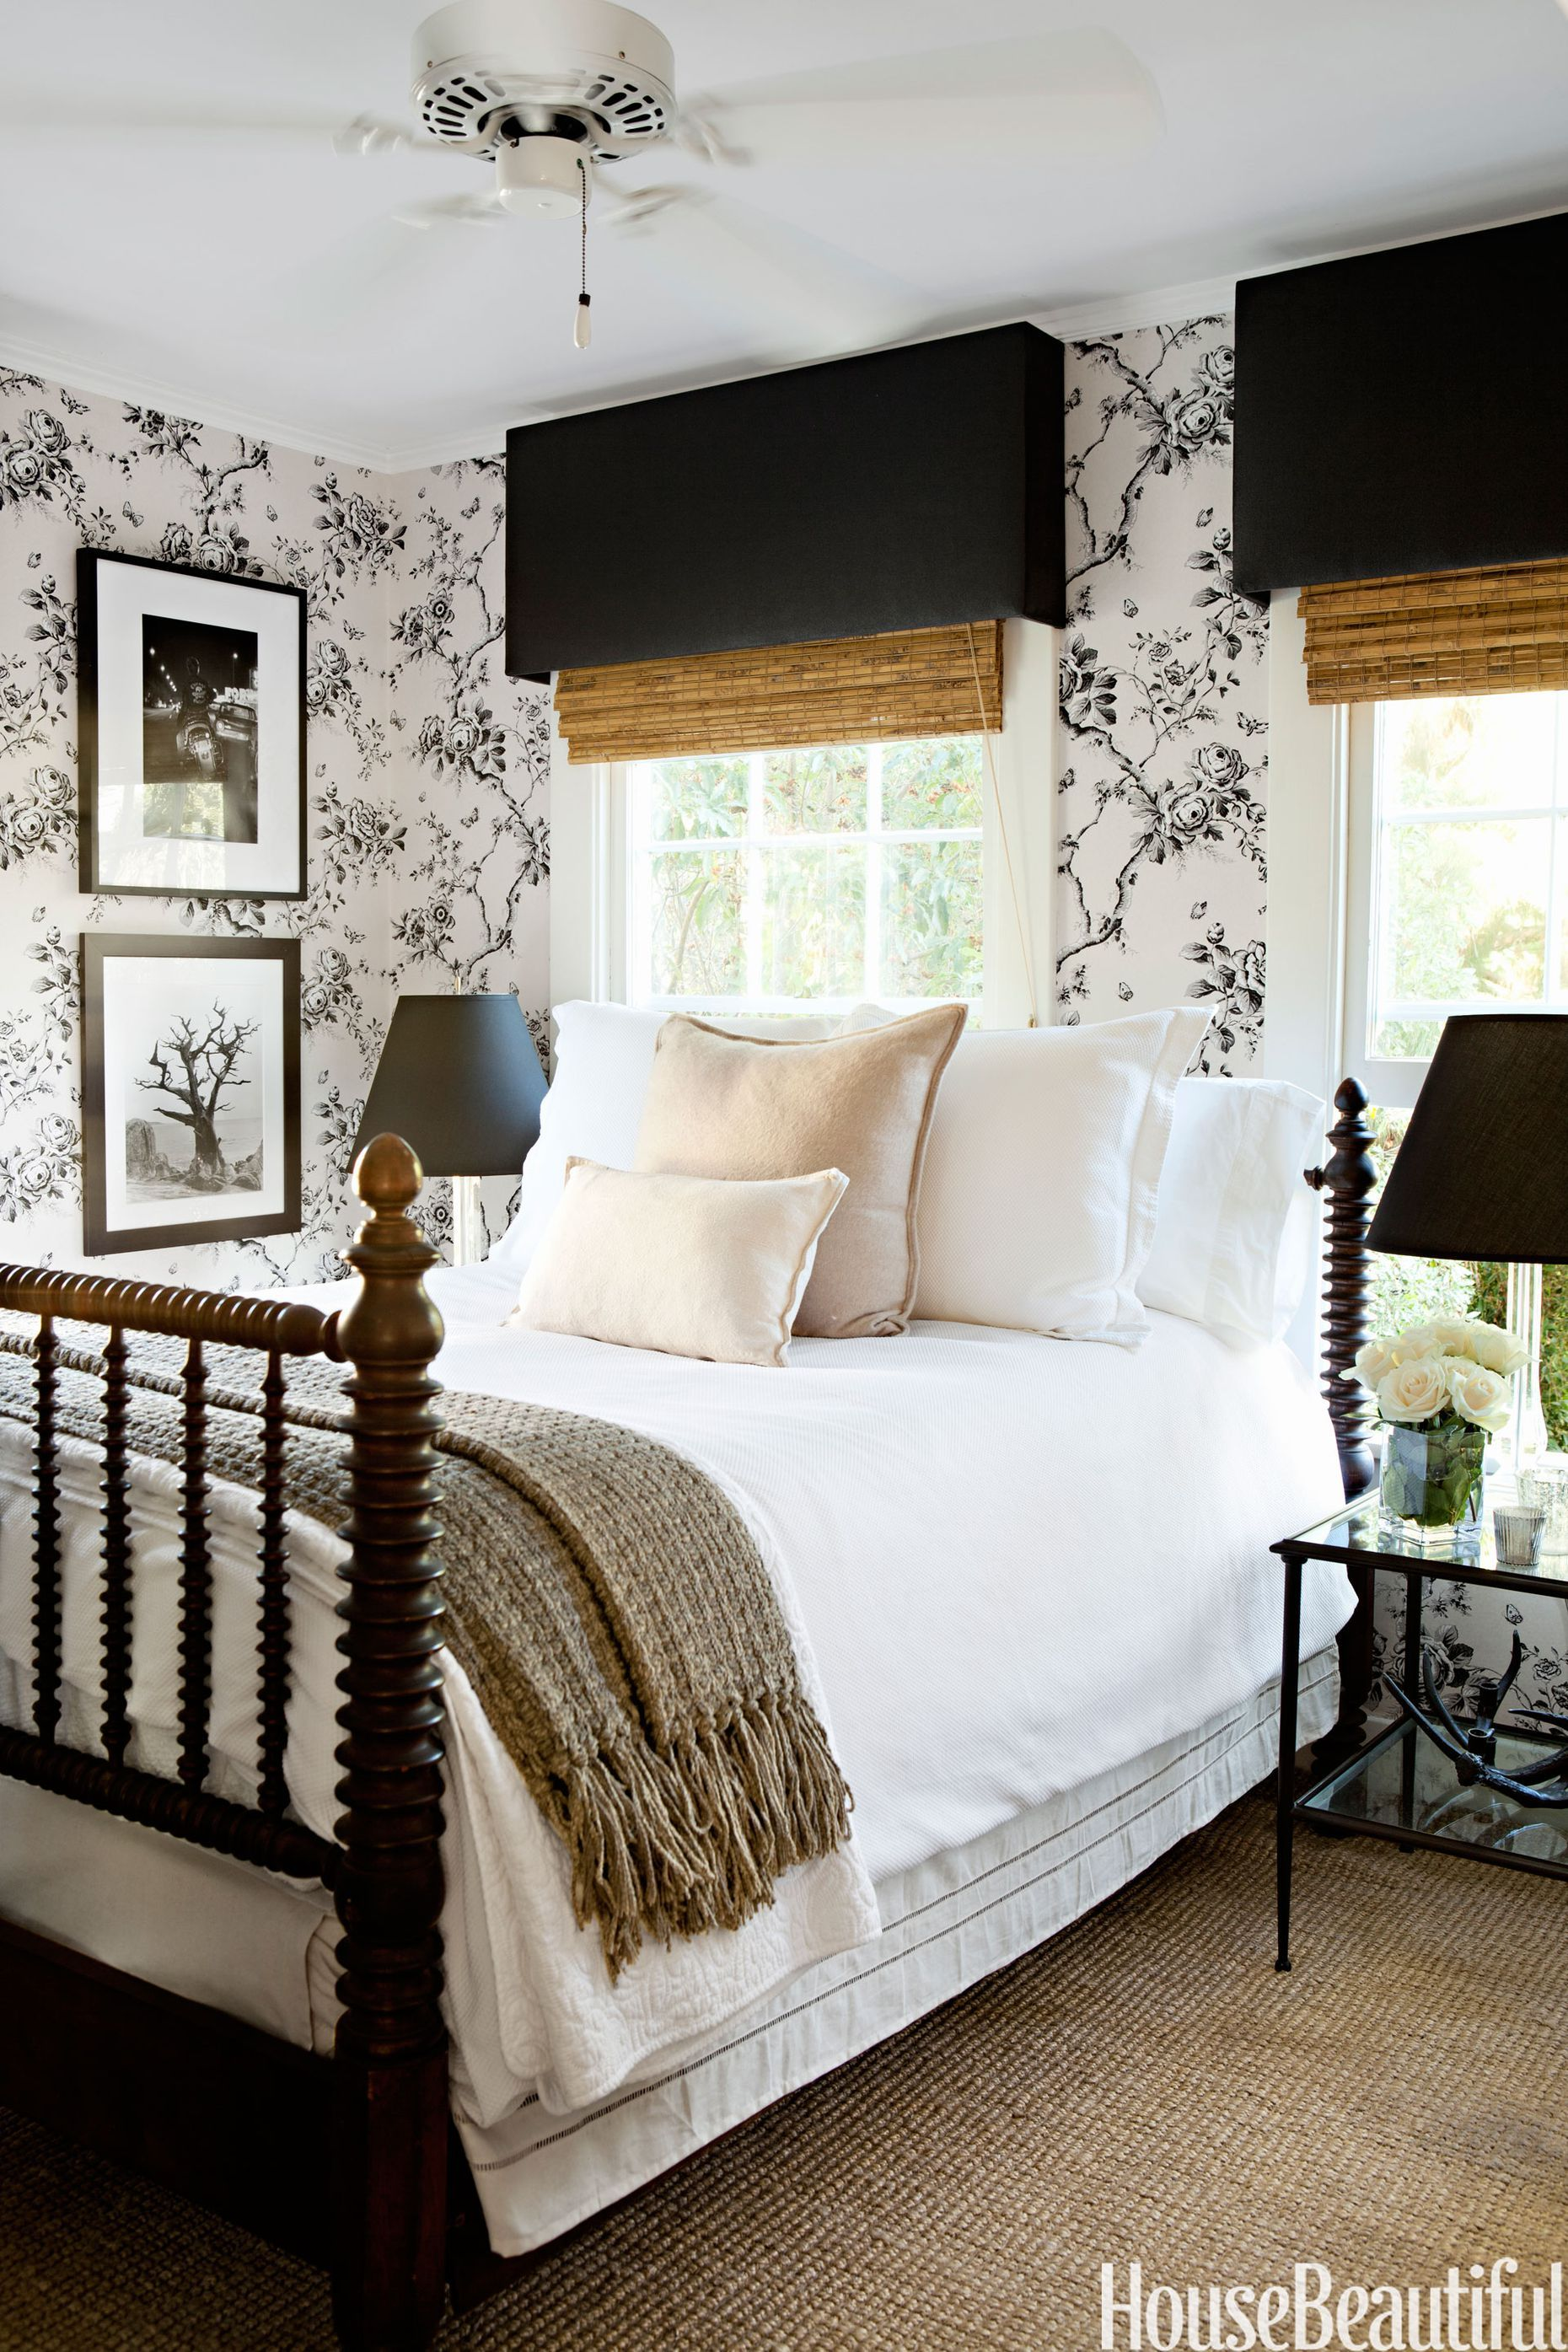 15 Beautiful Black And White Bedroom Ideas Black And White Decor